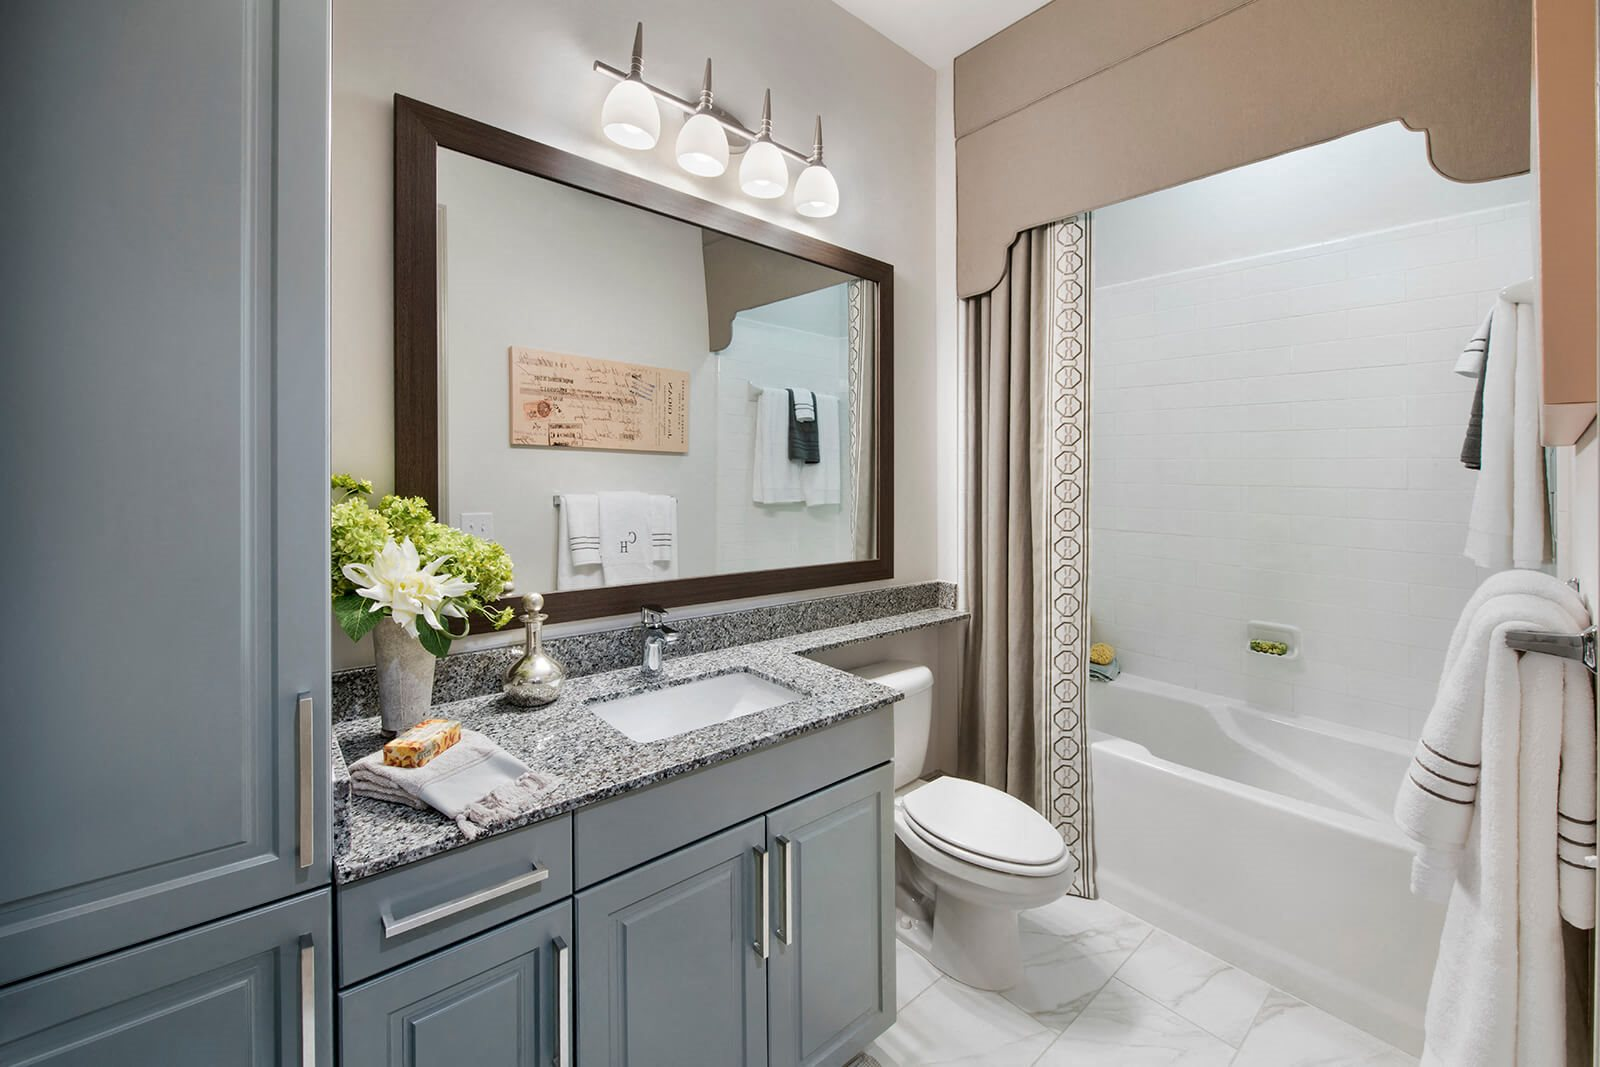 Luxurious Garden Tub in Spa-Inspired Bathroom at Windsor Chastain, Atlanta, 30342